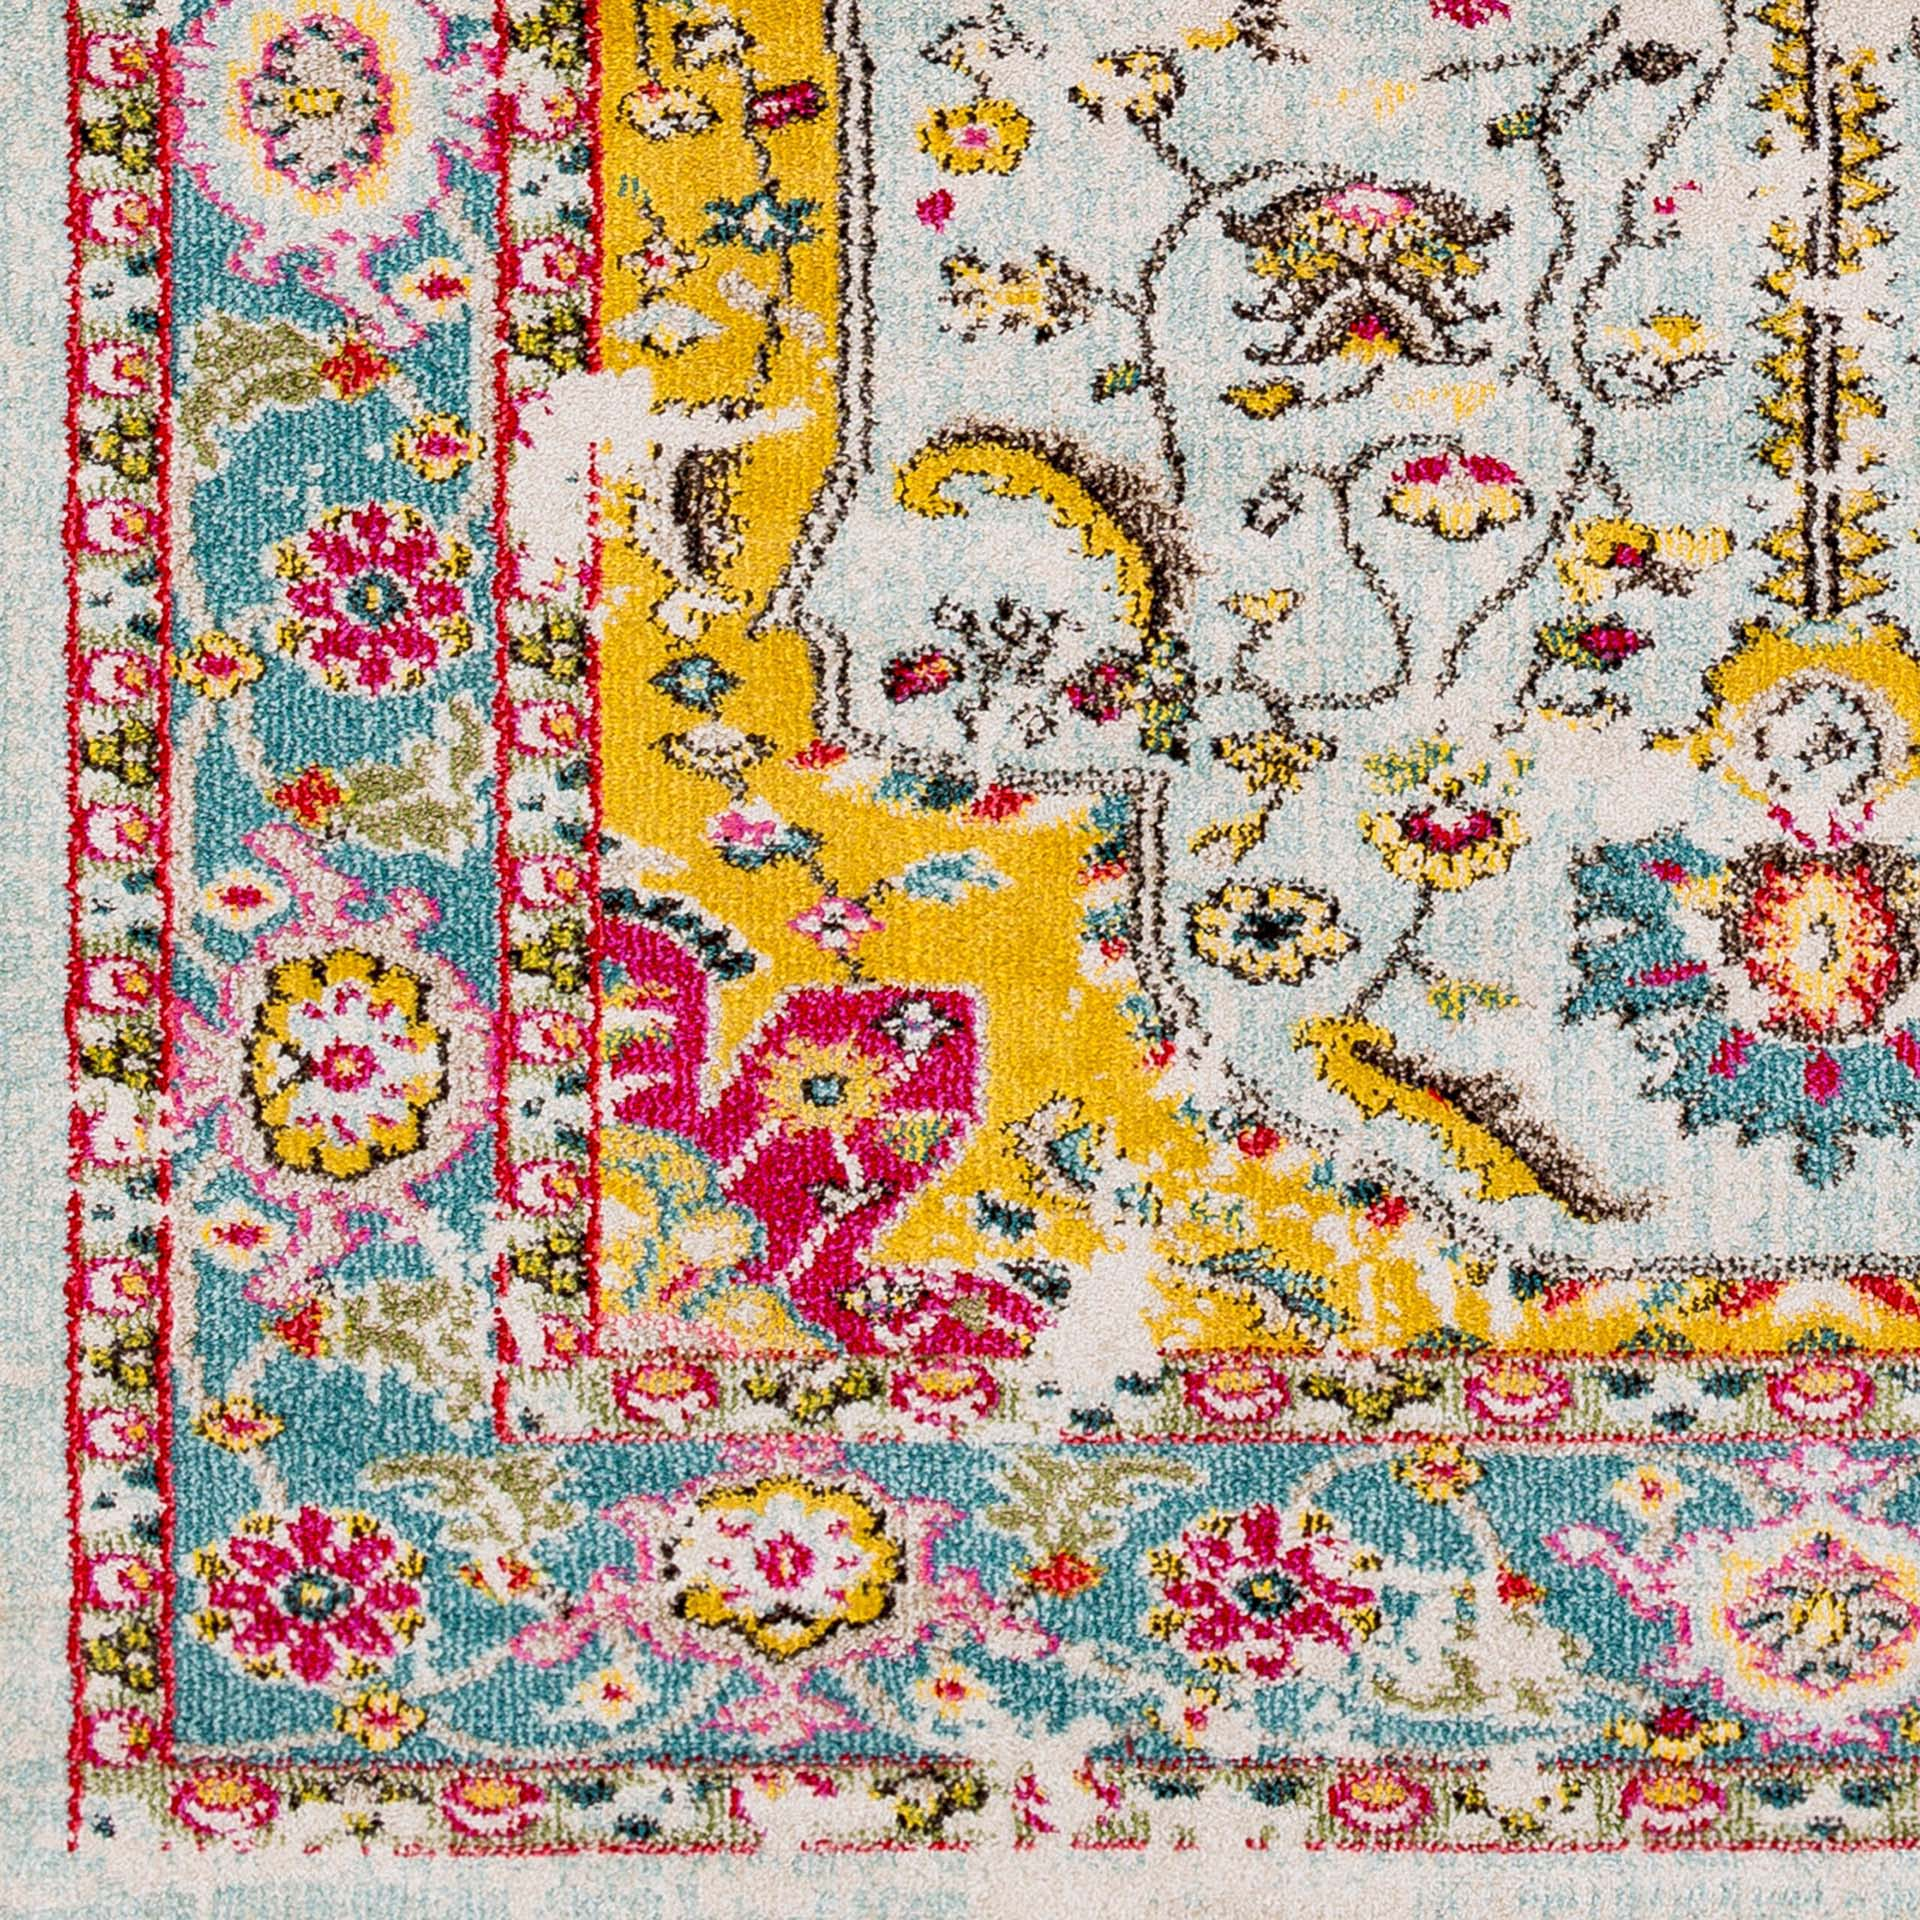 Trendy colorful 5x7 Turkish rug with hints of yellow, pink and blue from the Surya Anika Collection on wood floor - Detailed Shot